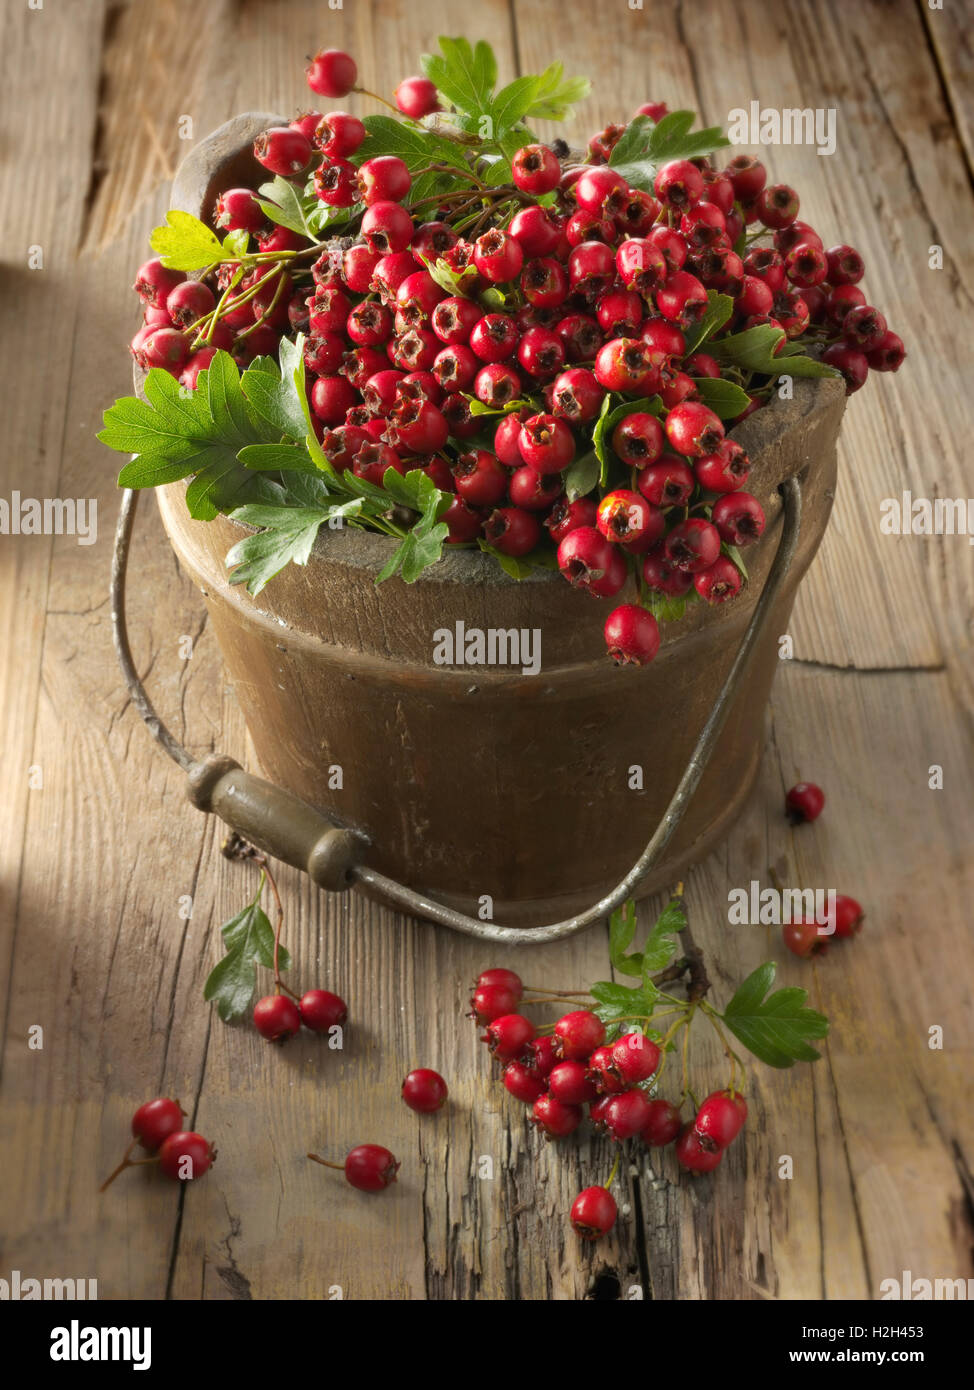 Fresh picked berries from a hawthorn, thornapple, May-tree, whitethorn, or hawberry bush (Crataegus) - Stock Image